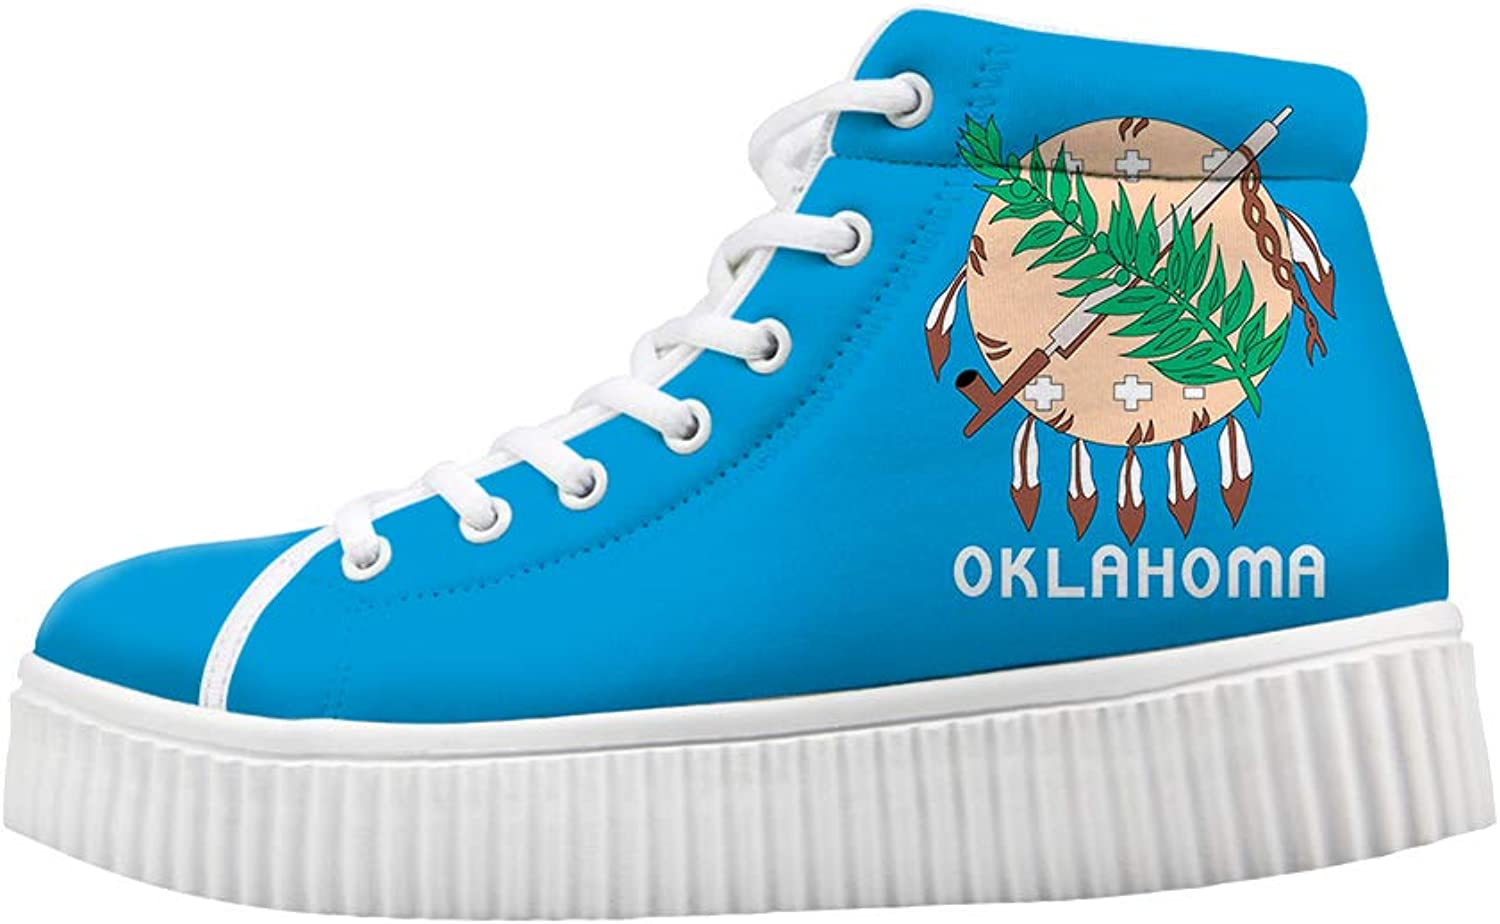 Platform Lace up Sneaker Casual Chunky Walking shoes High Top Women Indian Tribal Sooner State Oklahoma Flag